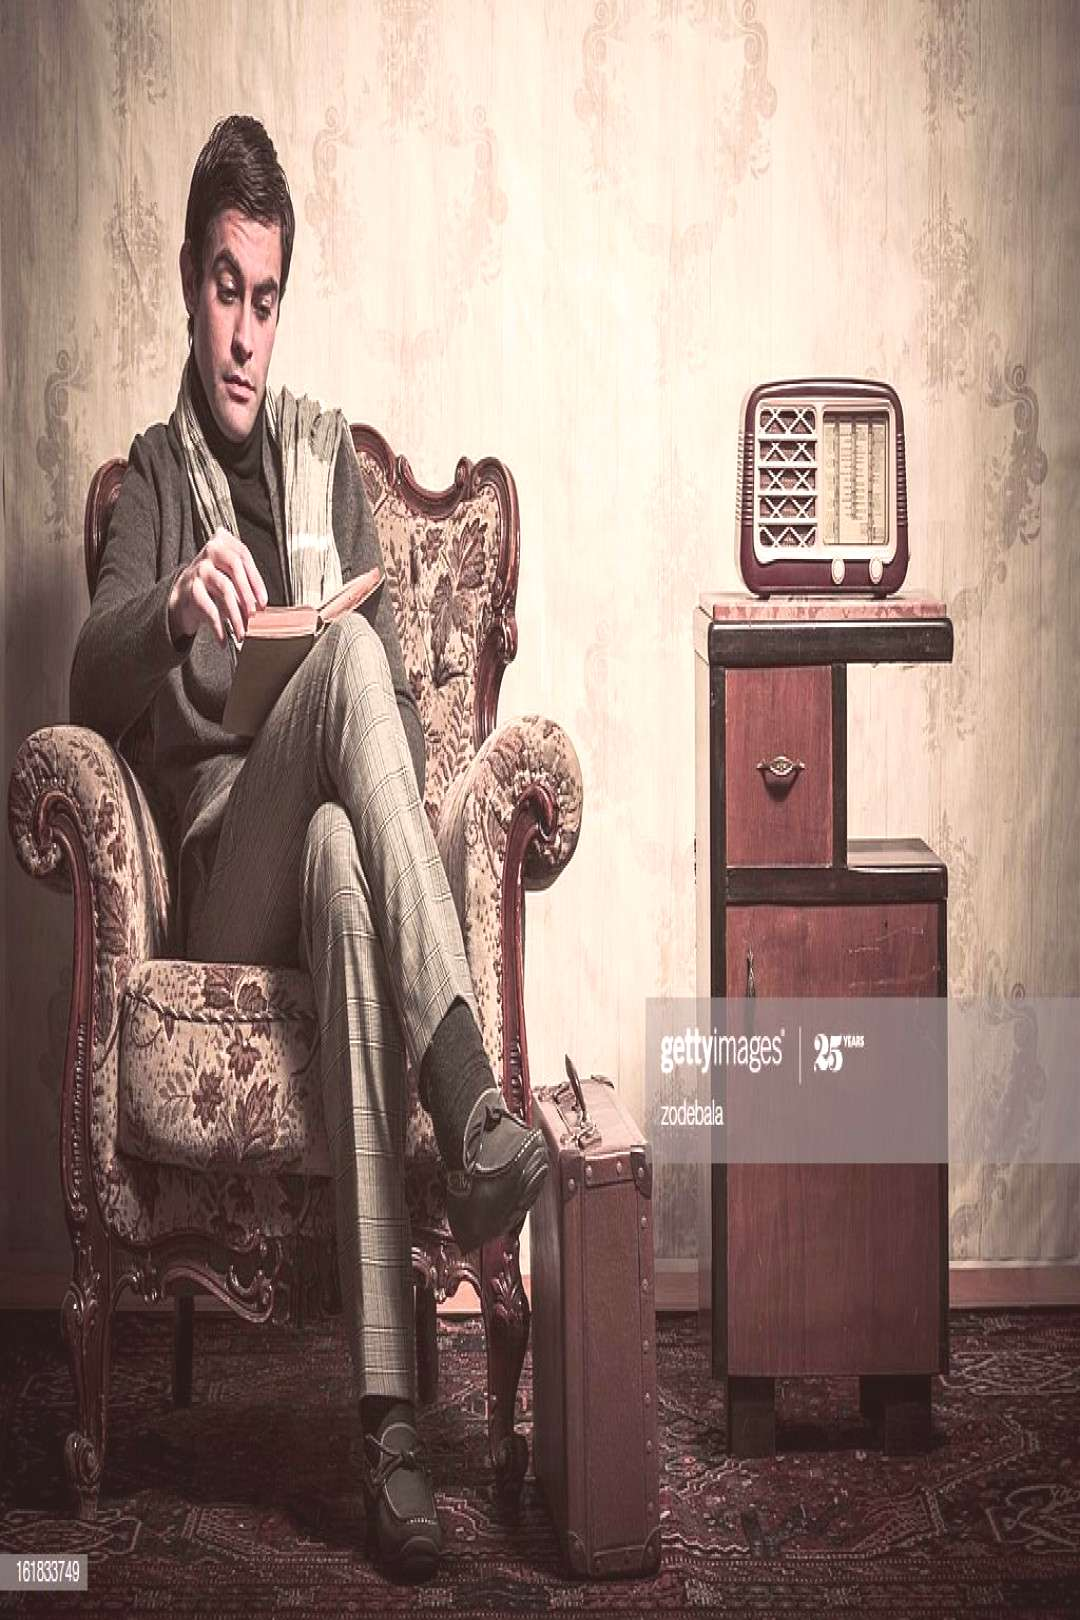 Elegant Retro Man Reading A Book In Vintage Room Photography ,